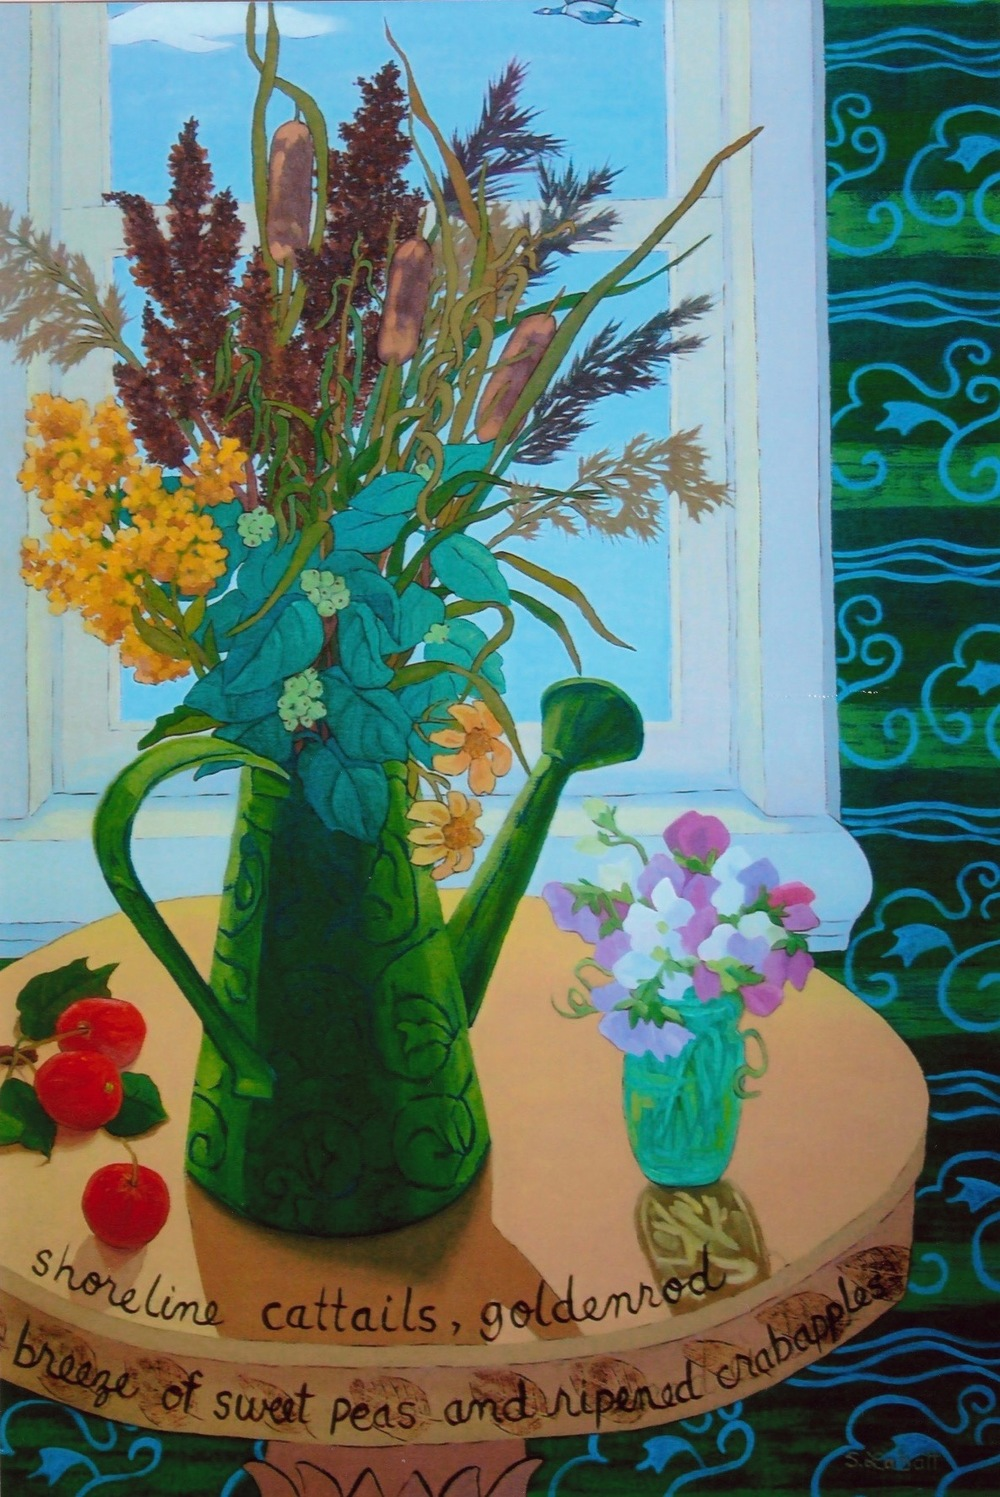 "Scent of Summer; Acrylic on canvas, 36"" x 24"", 2009"